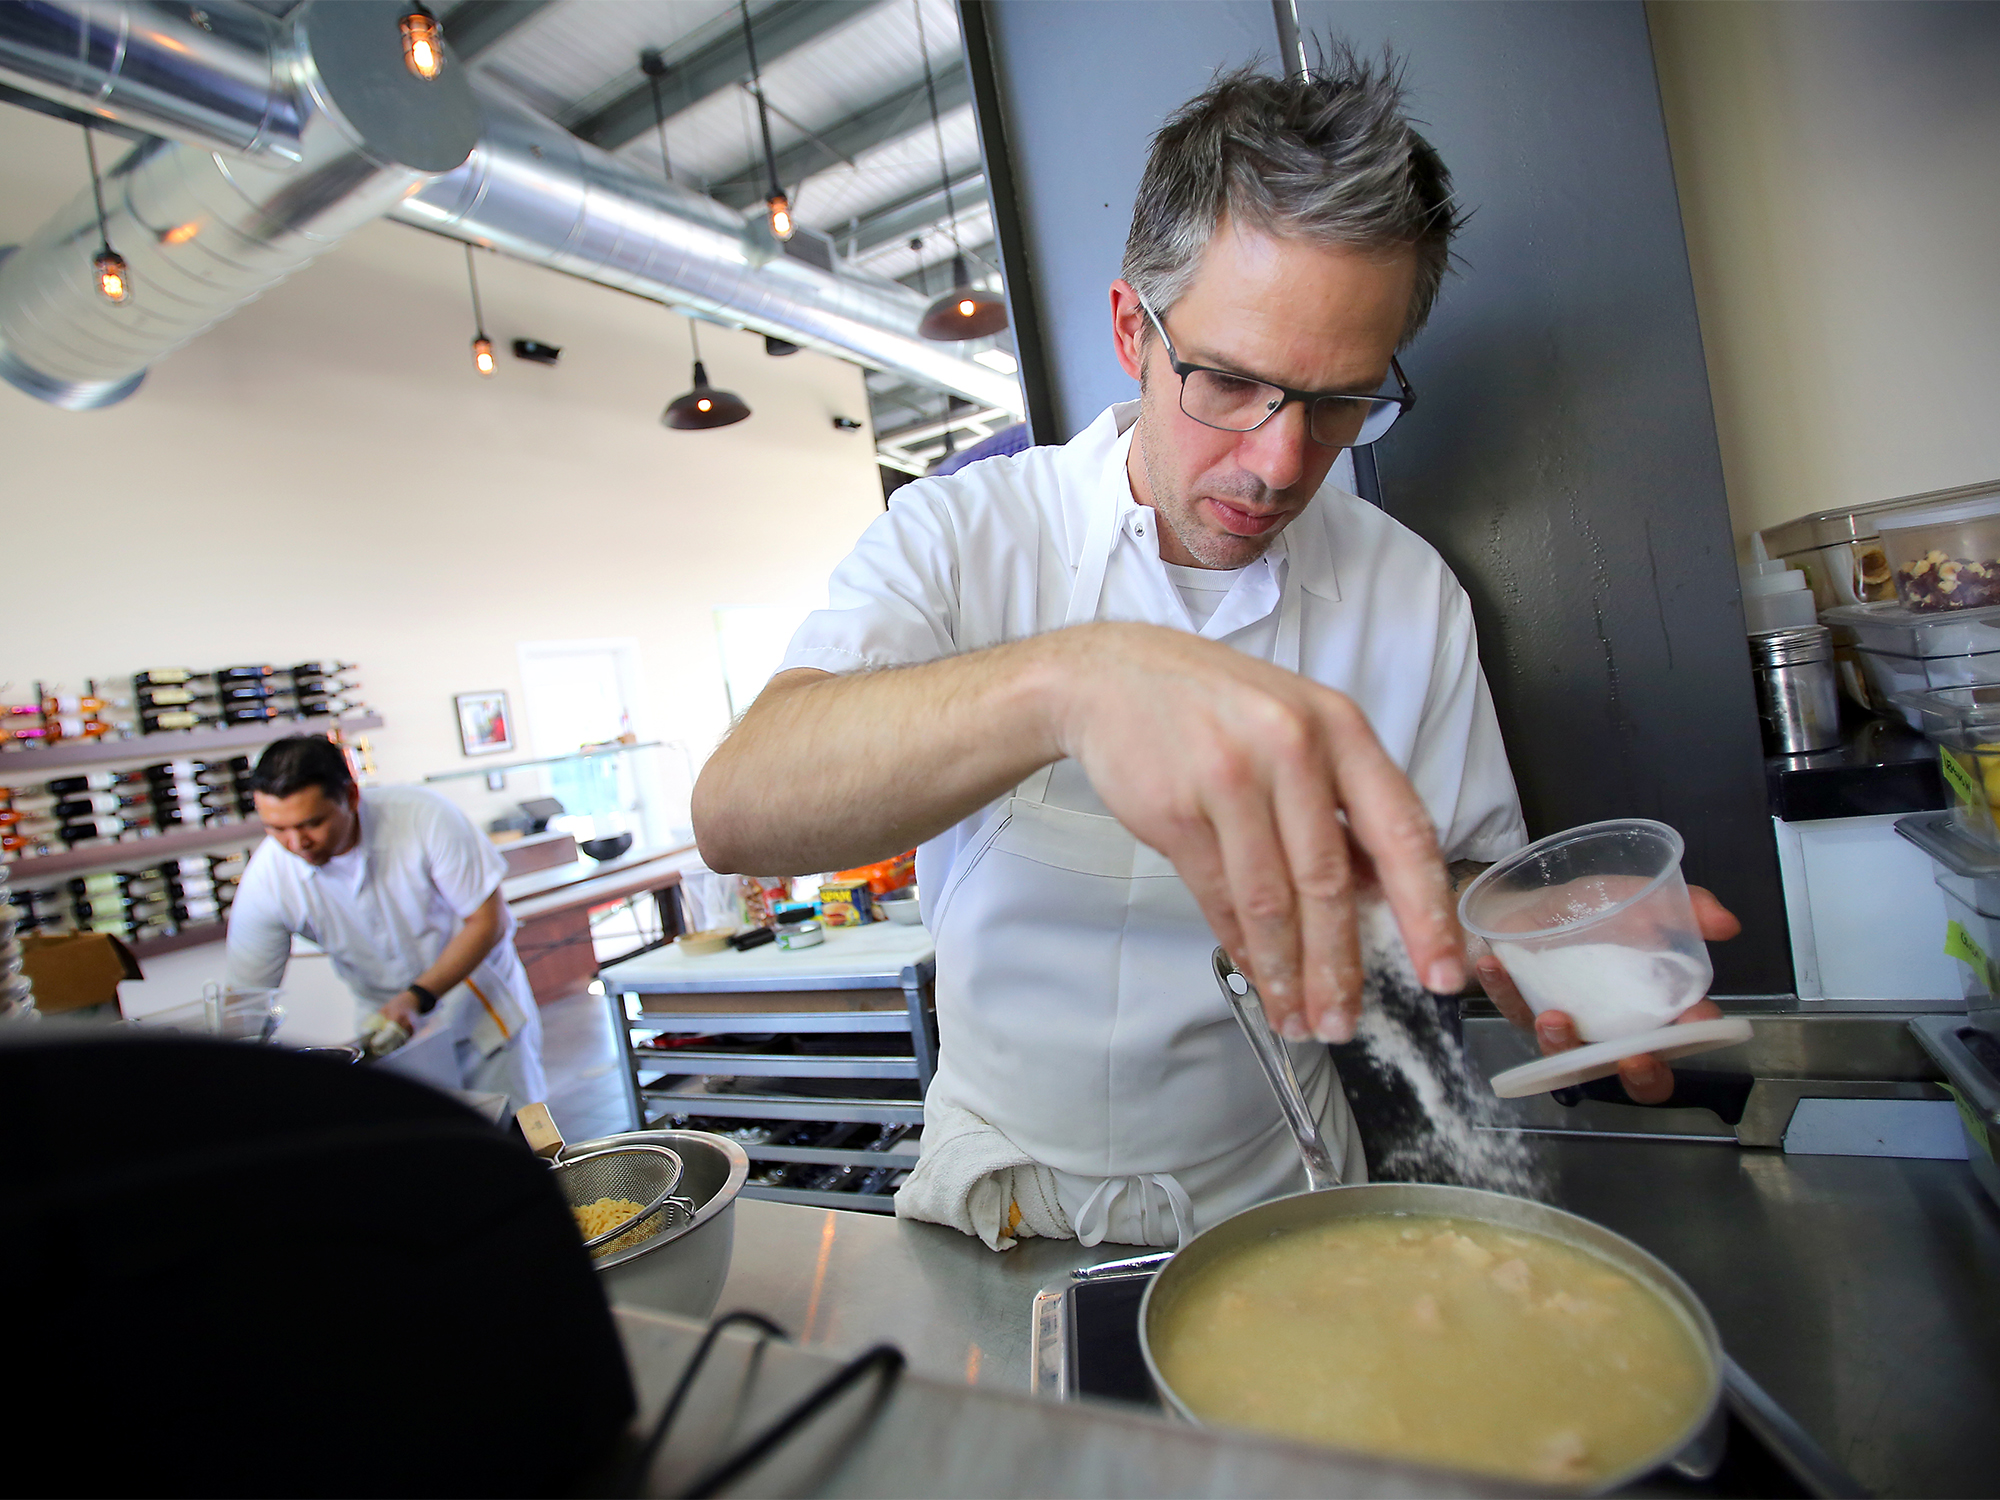 Mark Hopper, owner and chef at Vignette, puts salt in his casserole made from earthquake kit ingredients, in Sebastopol on Thursday, October 2, 2014. (Christopher Chung/ The Press Democrat)